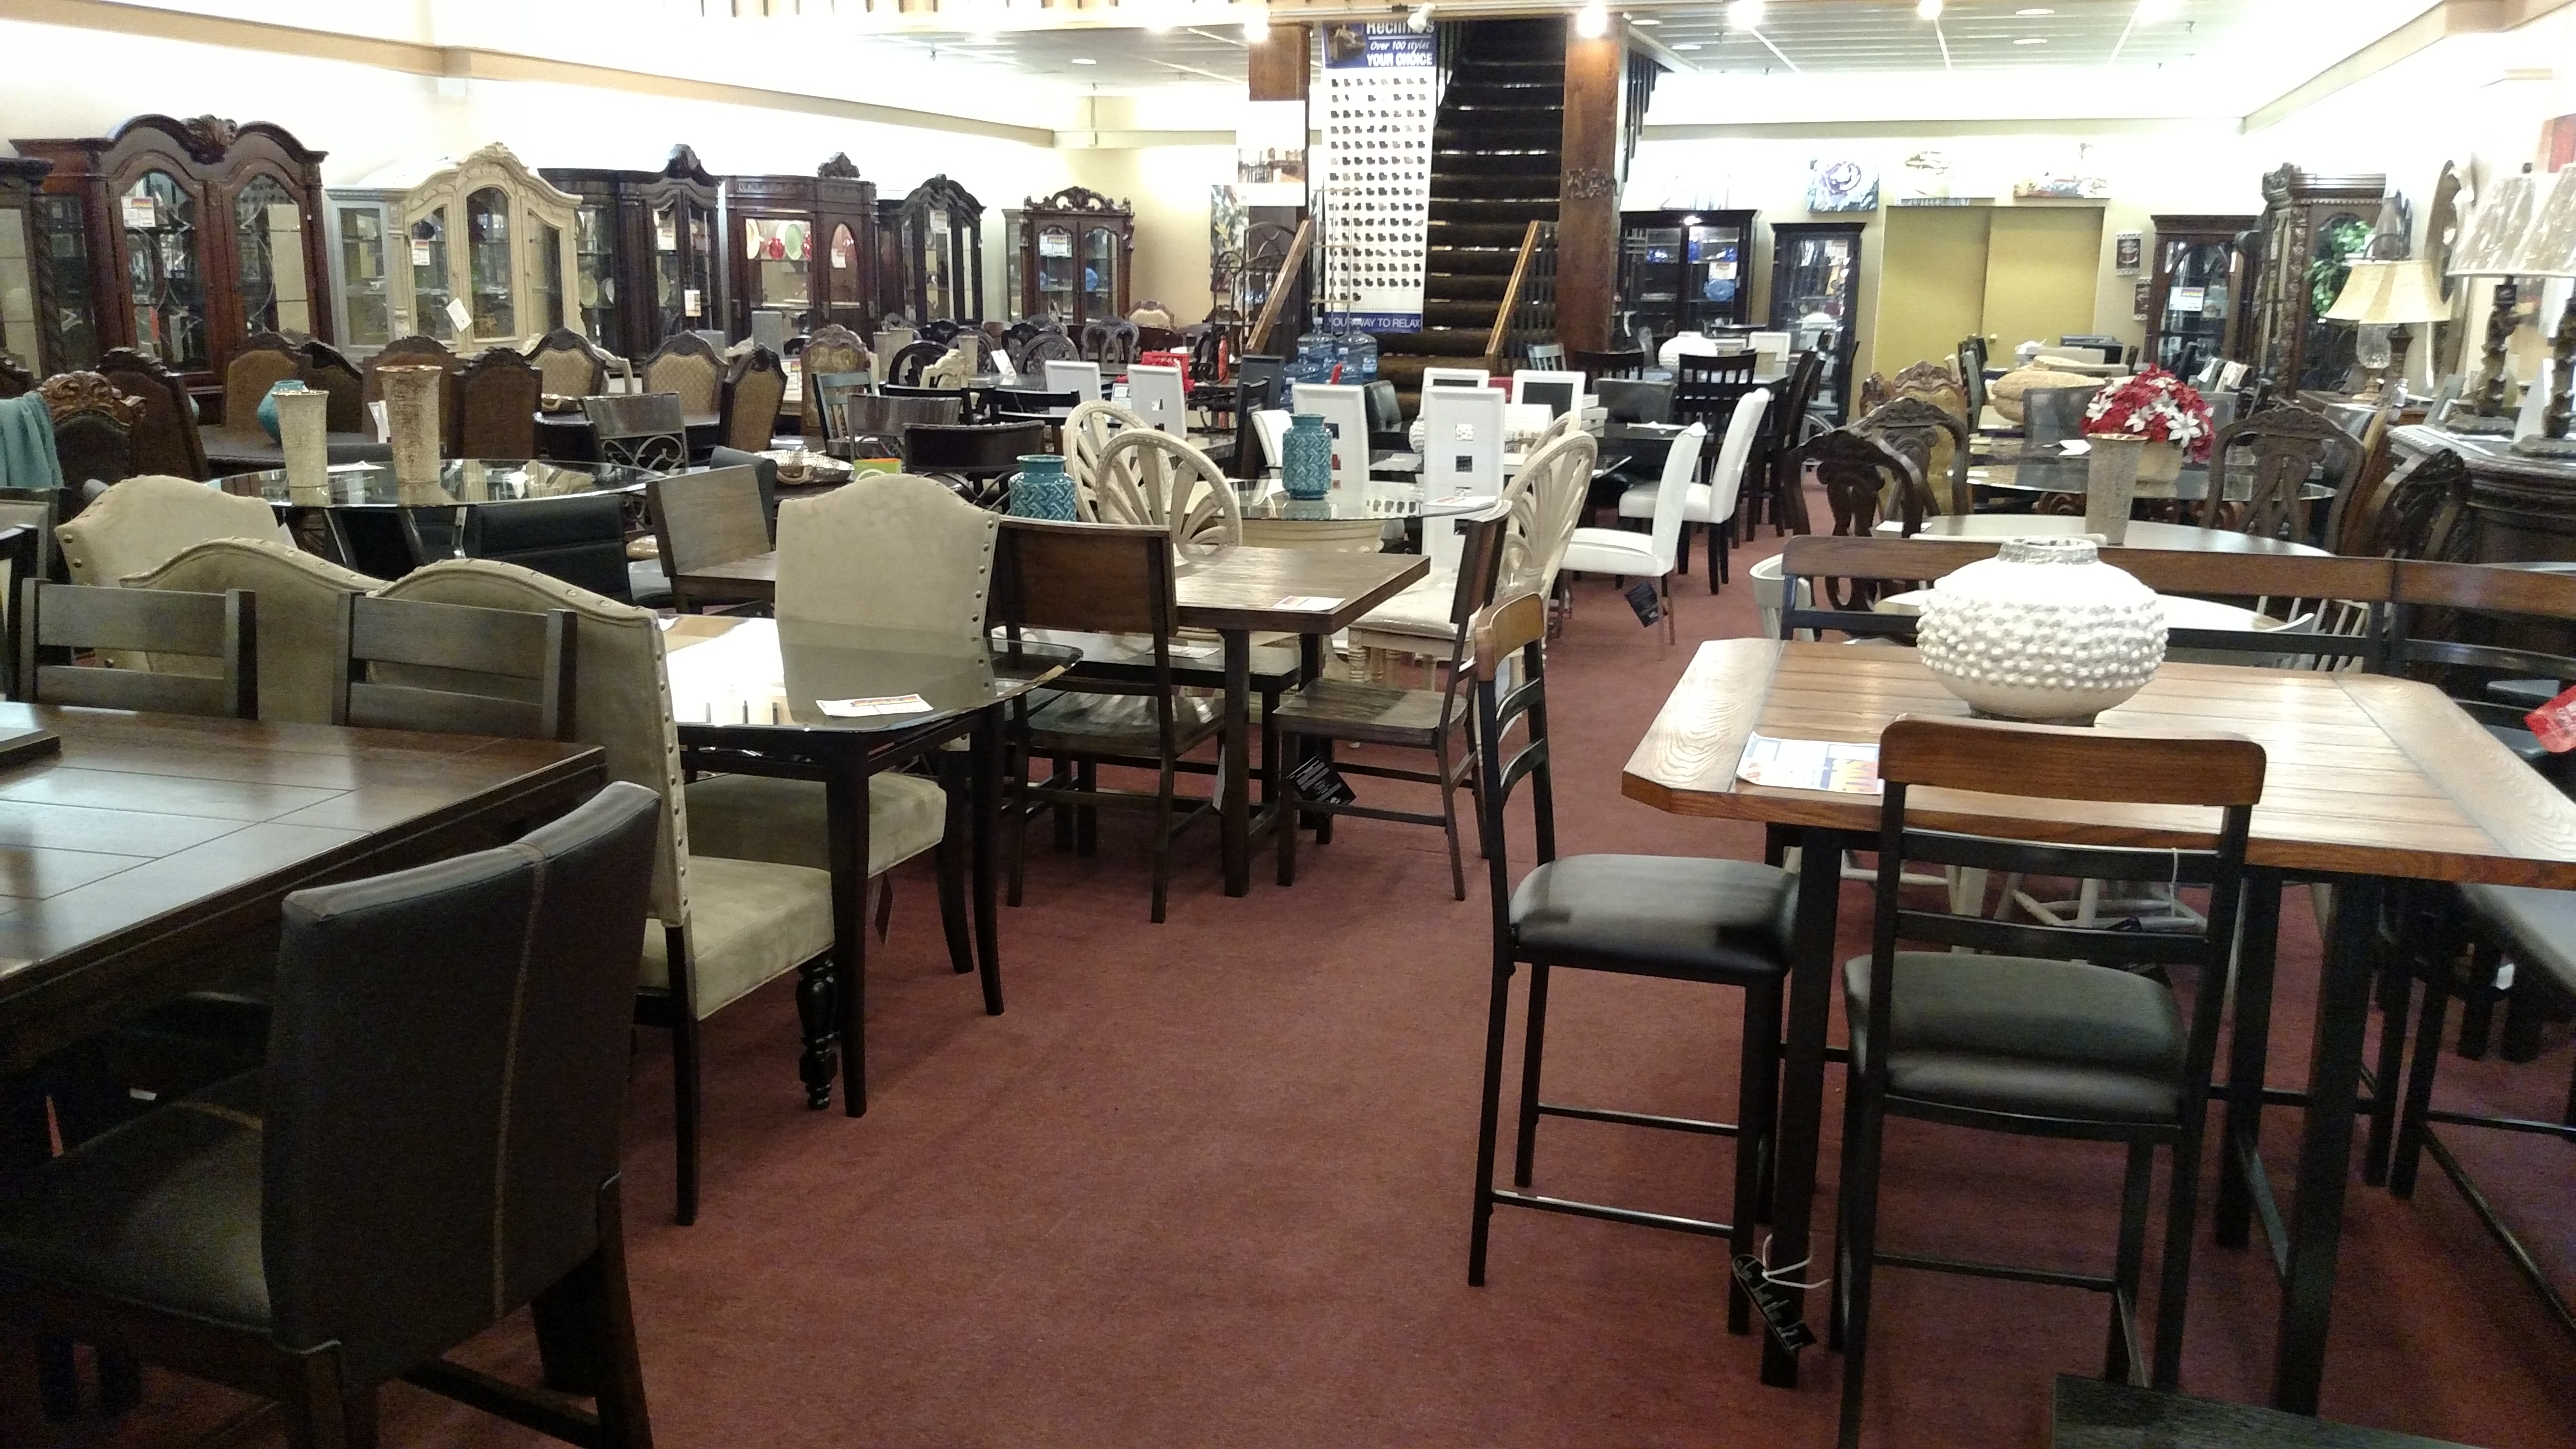 Superior Furniture Land Ohio 1395 Morse Rd Columbus, OH Furniture Stores   MapQuest